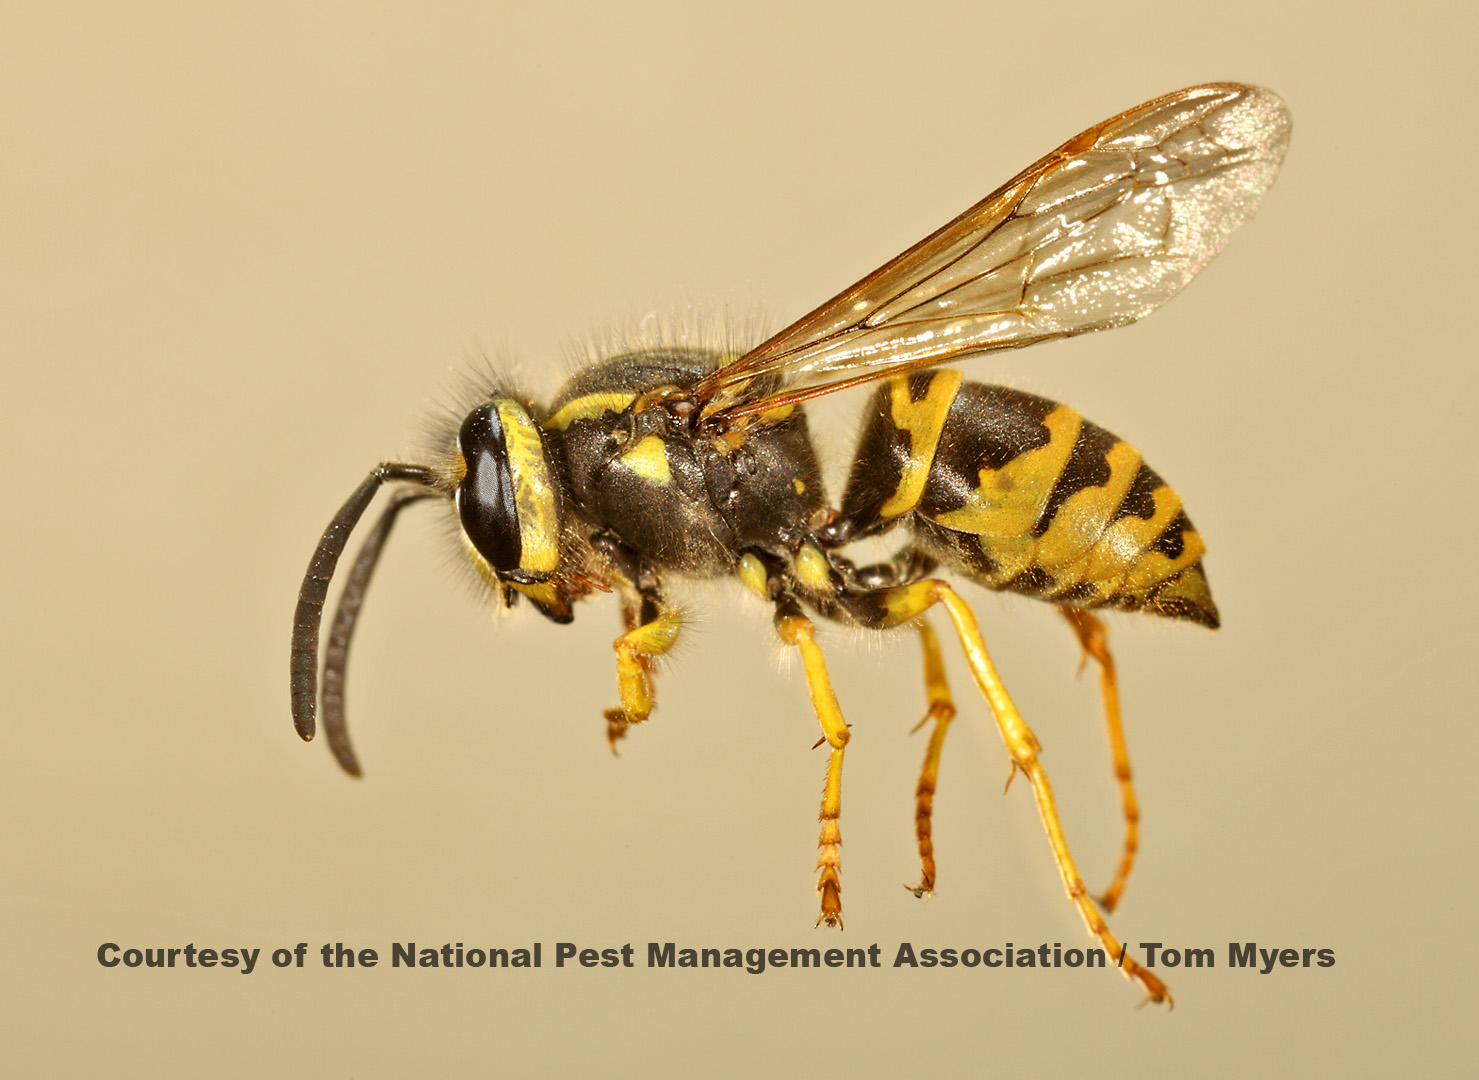 Black and yellow bee or wasp